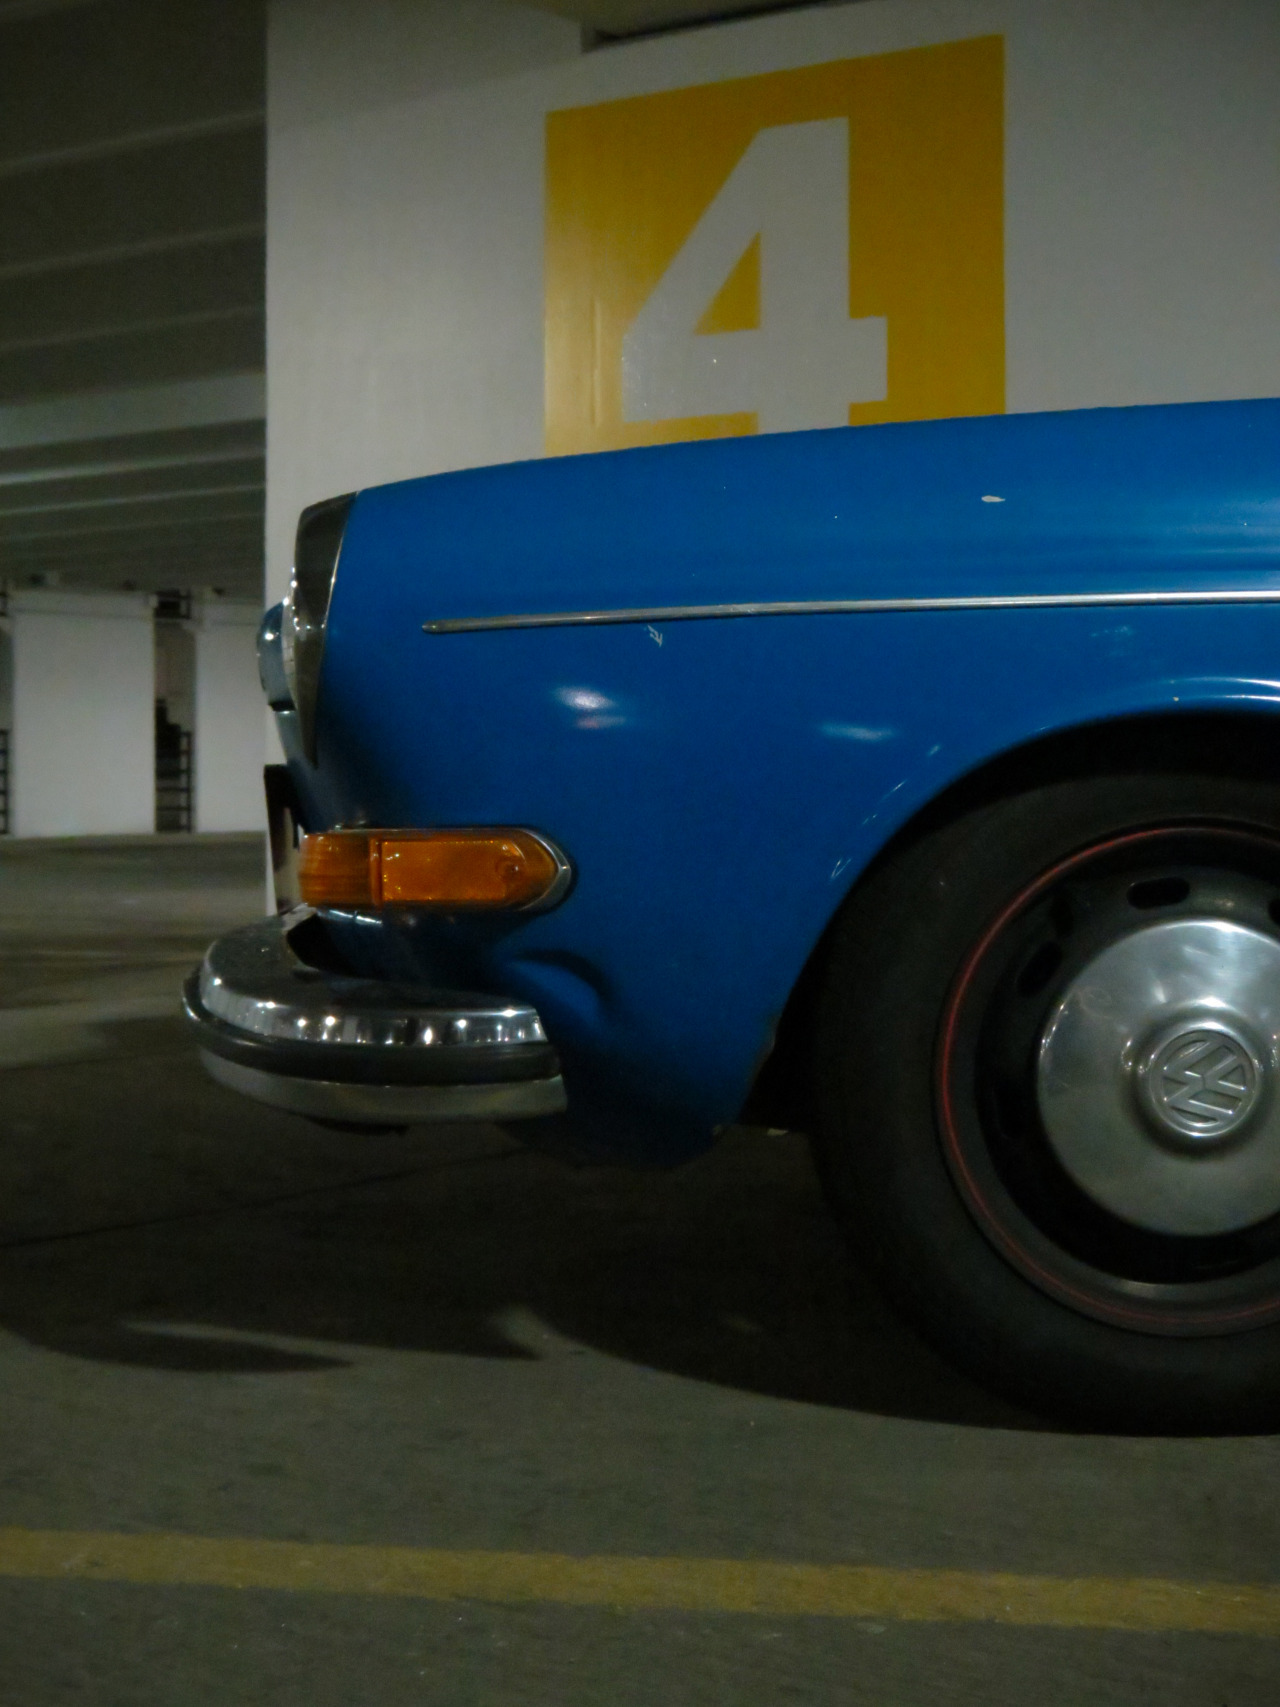 scrapeyard:  Blue's Blue Volkswagen Type 3 Things about the shoot: //Didn't get the exact shots I wanted in the garage. (there was a drug deal going on) //Met a really rad dude //Rolling shots while driving the 240 are super hard to do